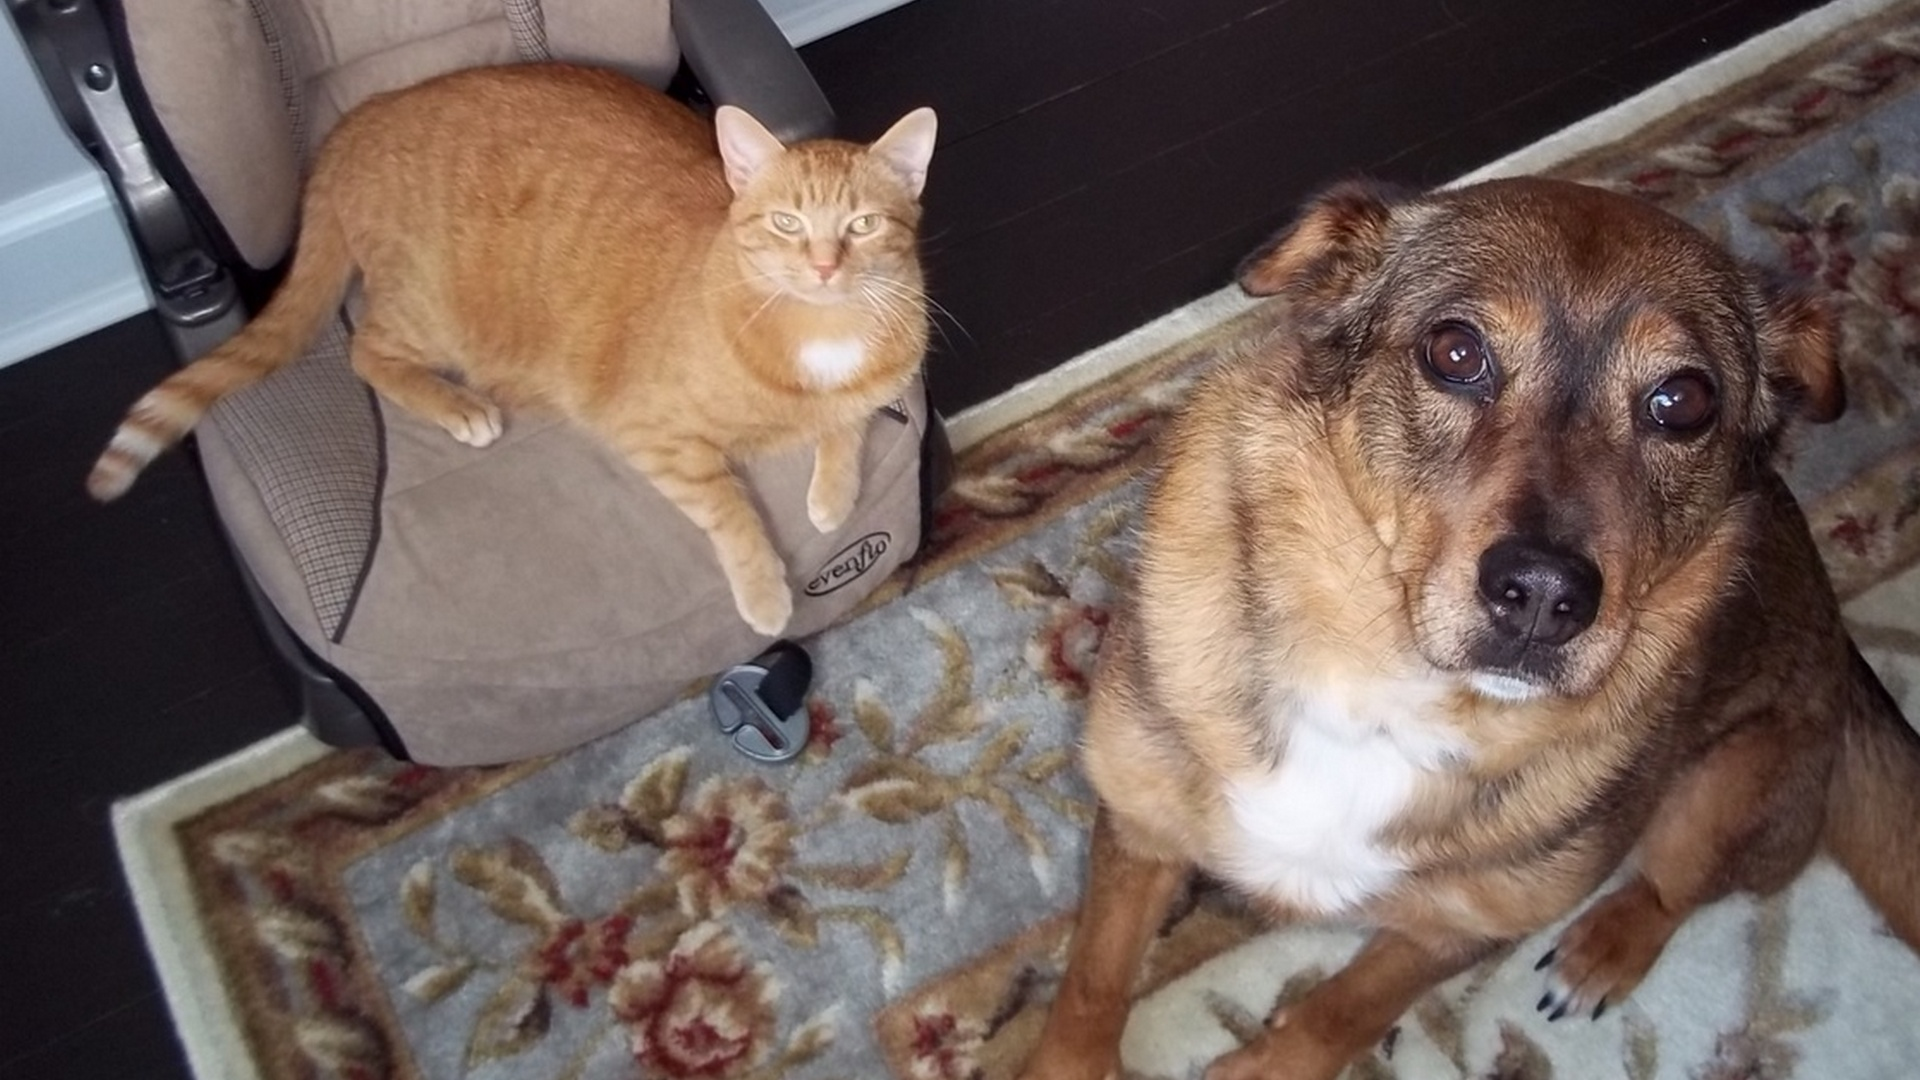 Dog and cat sitting next to each other